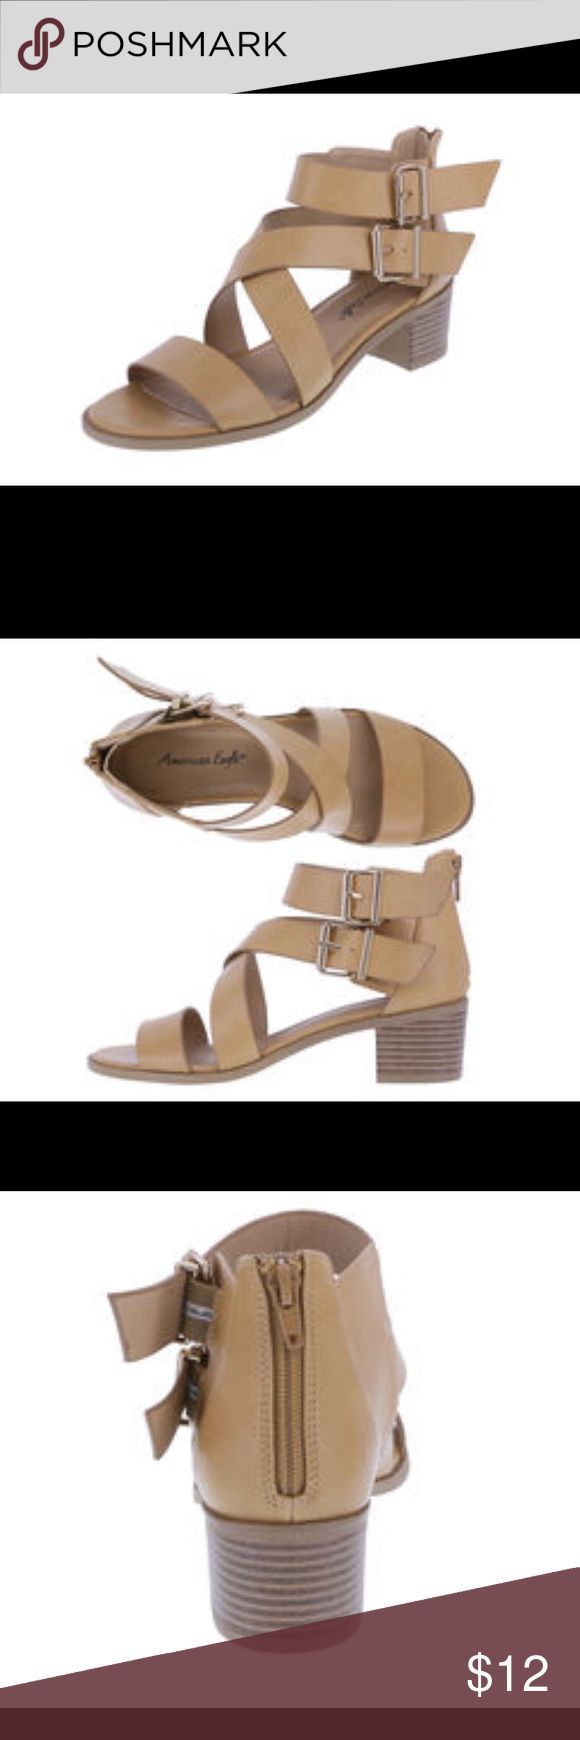 American eagle for Payless shoes size 9.5 Worn for a few hours like new. 2.5 inch heel. Look exactly like photos shown. Final price ($12) feel free to make an offer on bundled items only. American Eagle By Payless Shoes Sandals